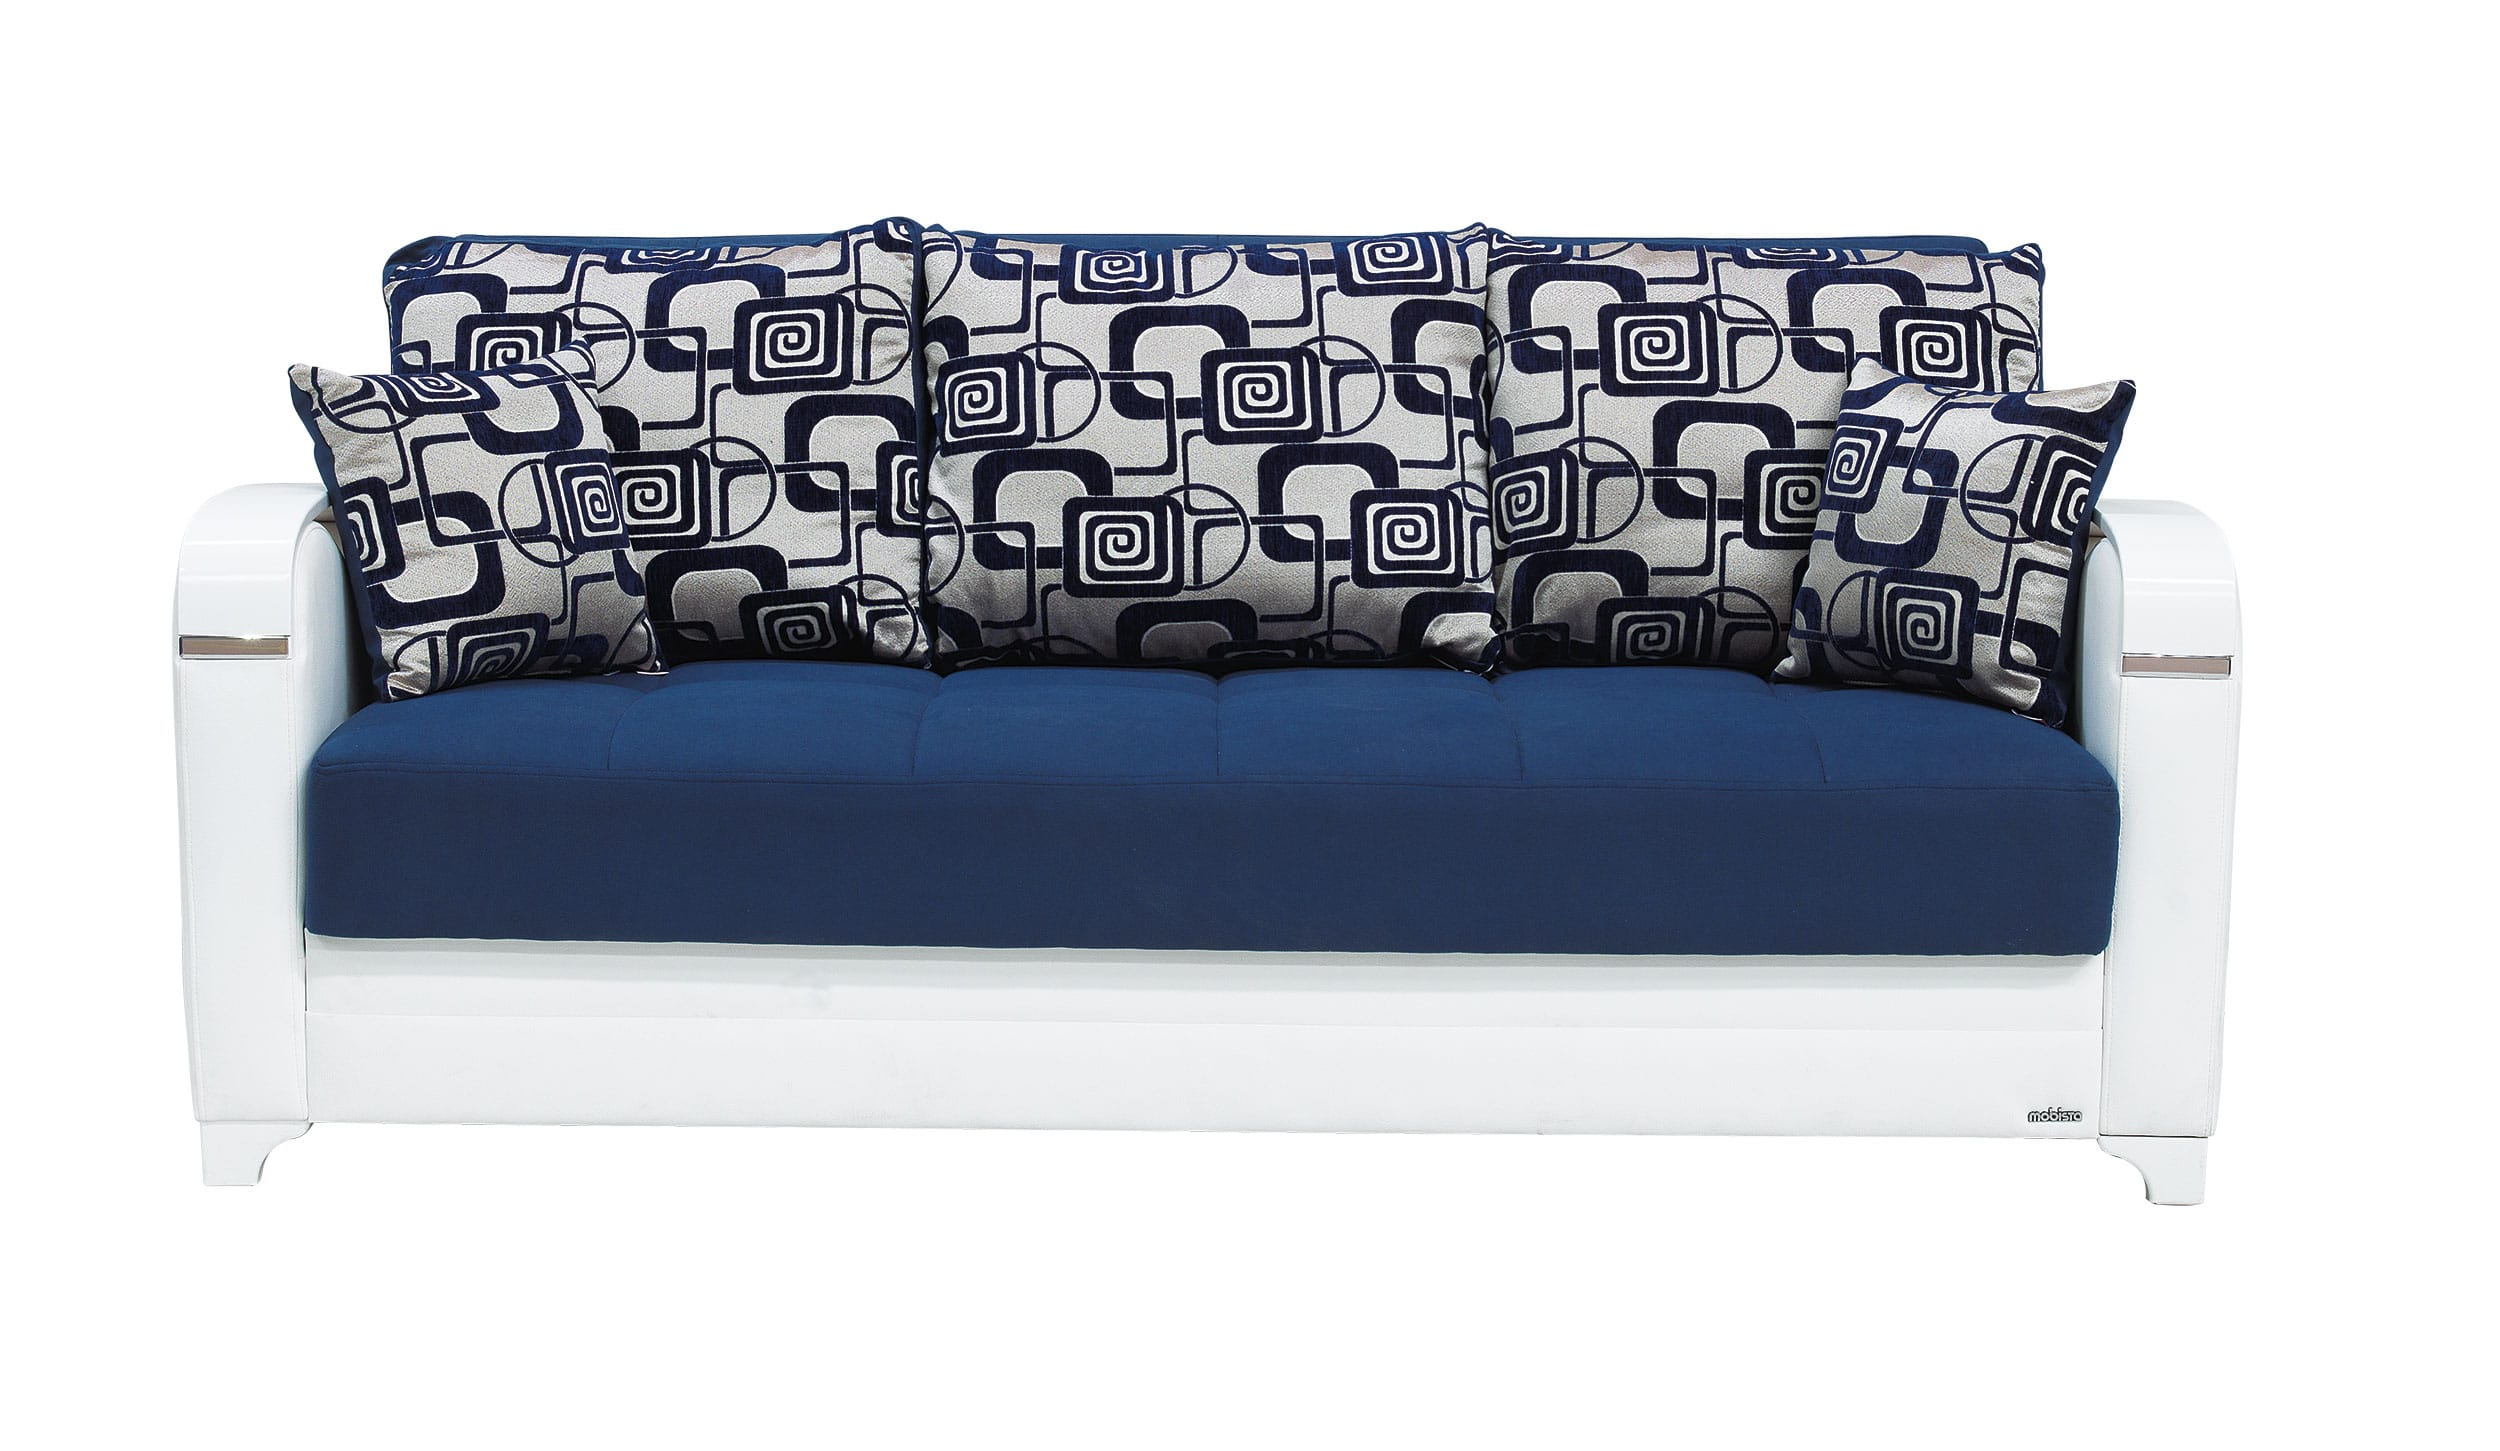 Sensational Mobetto Vintage Navy Blue Fabric Sofa Bed By Mobista Home Interior And Landscaping Dextoversignezvosmurscom